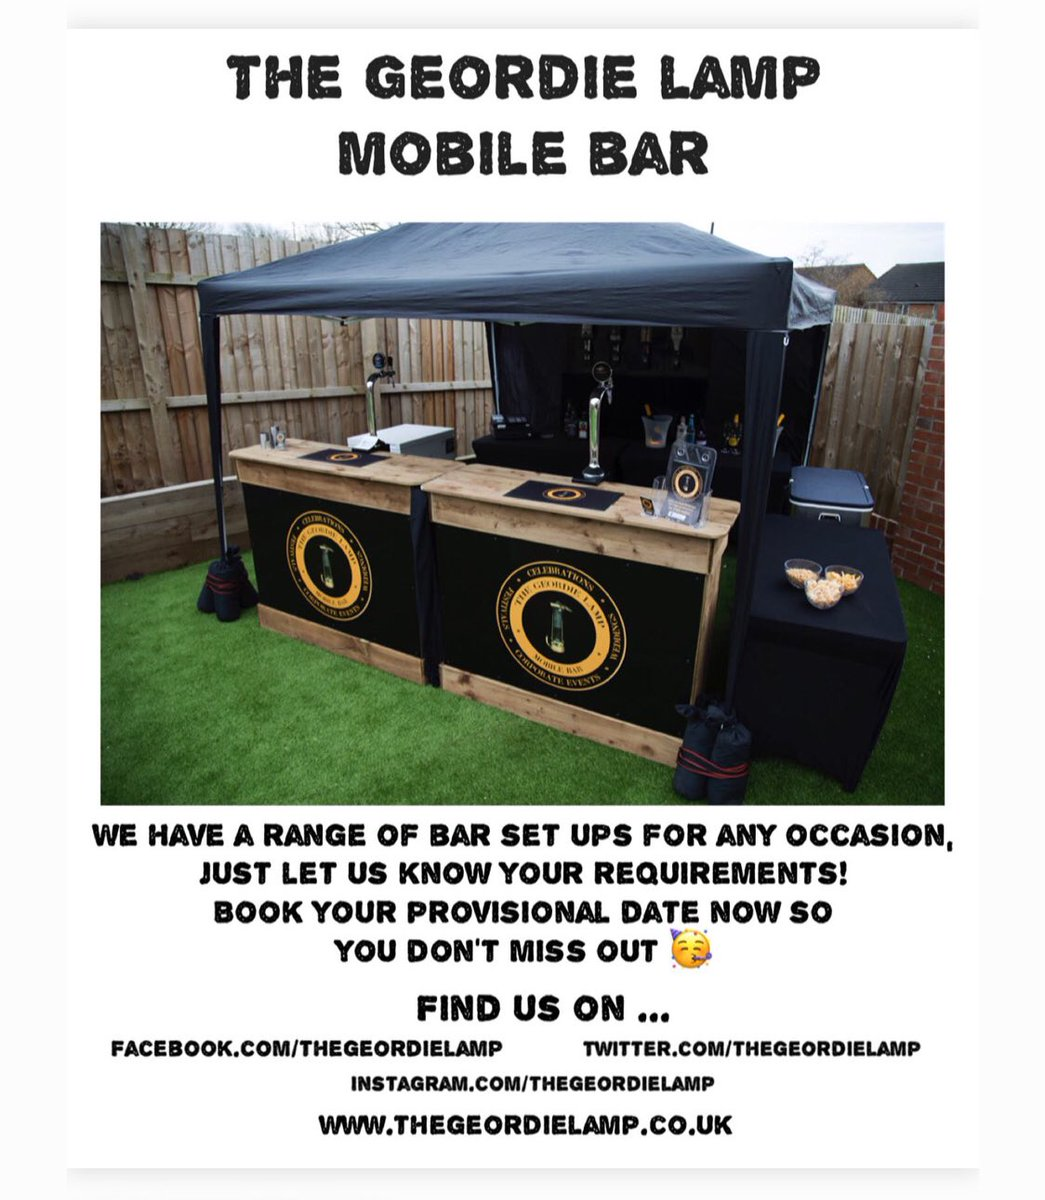 Have you got a special occasion coming up in 2021? We'd love to be a part of it and help you celebrate. Get in touch now to book your provisional date 😊 #mobilebar #events #celebrations #2021 #positivevibes #positivity